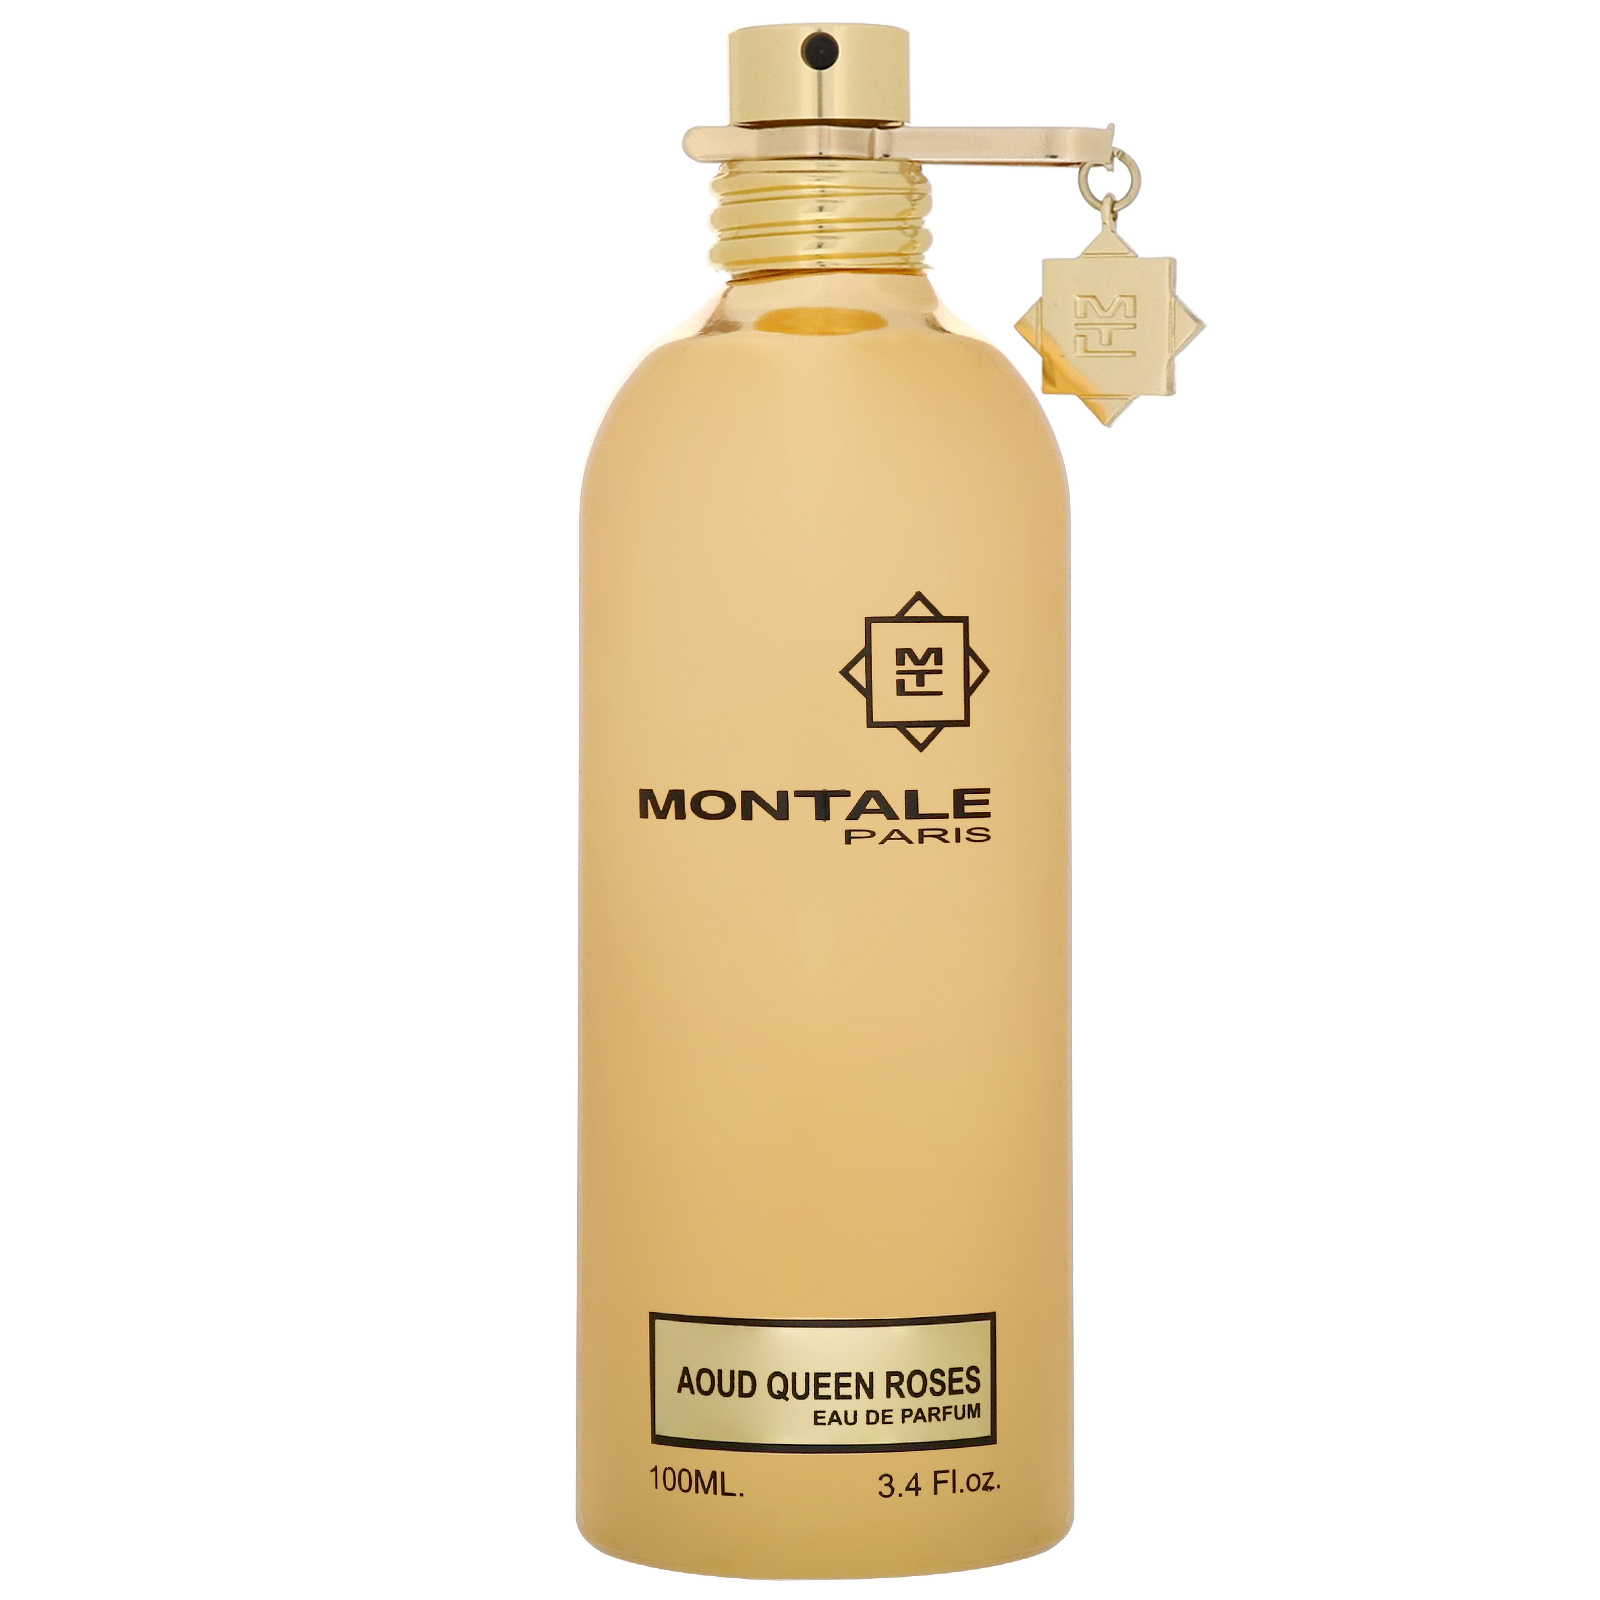 Montale Aoud Queen Roses Eau de Parfum Spray 100ml